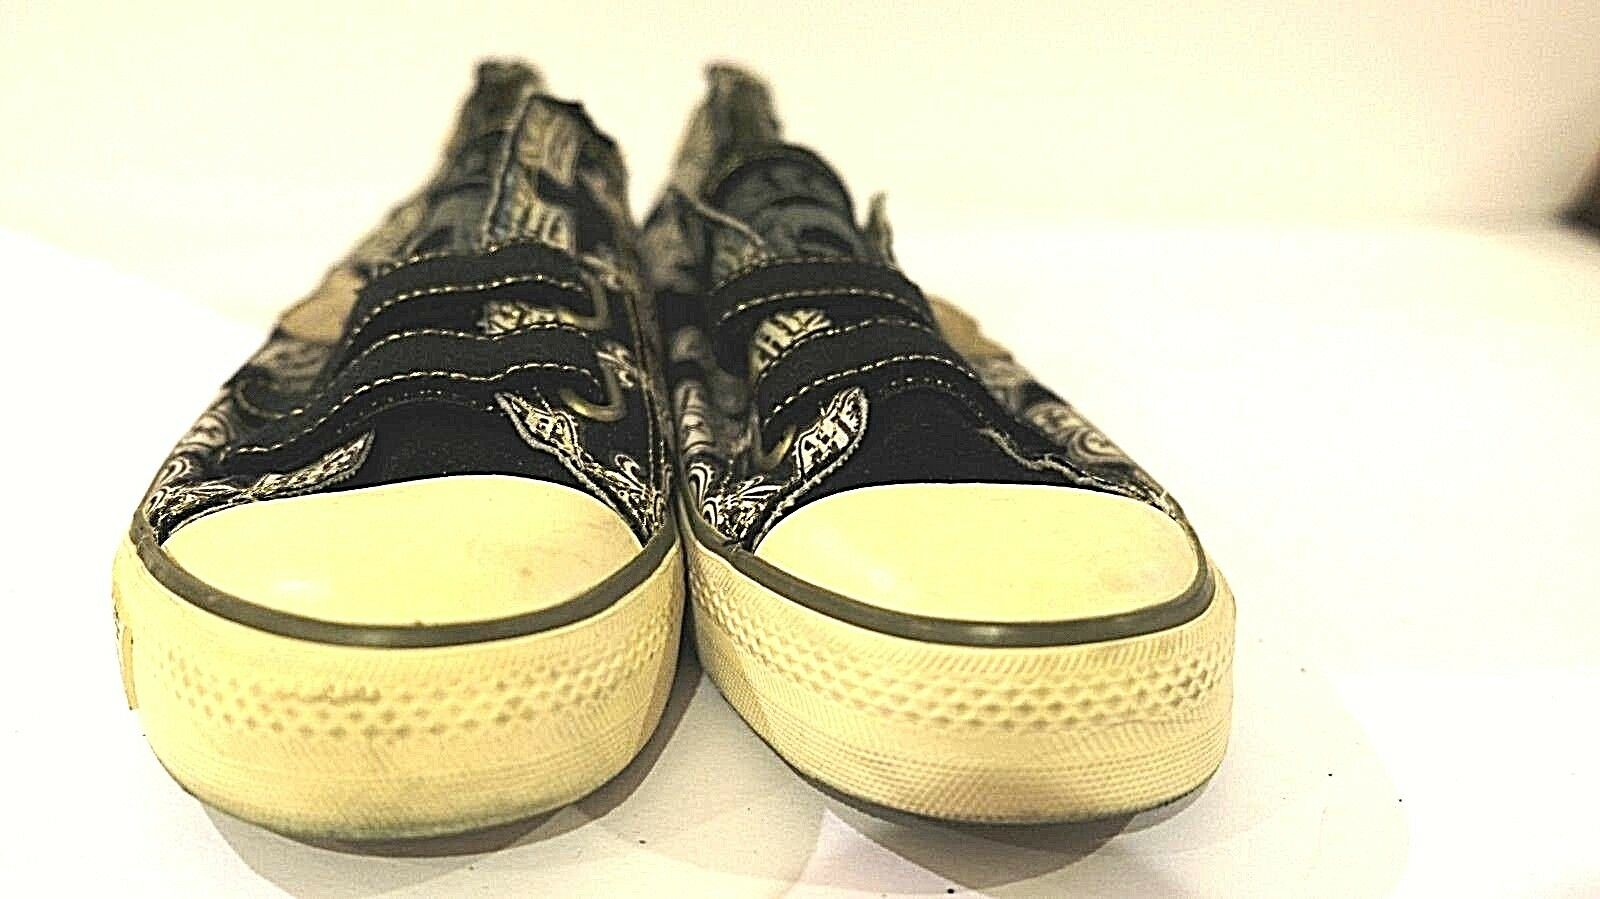 ELVIS COLLECTORS EDITION SHOES SKATER STYLE VELCR… - image 3